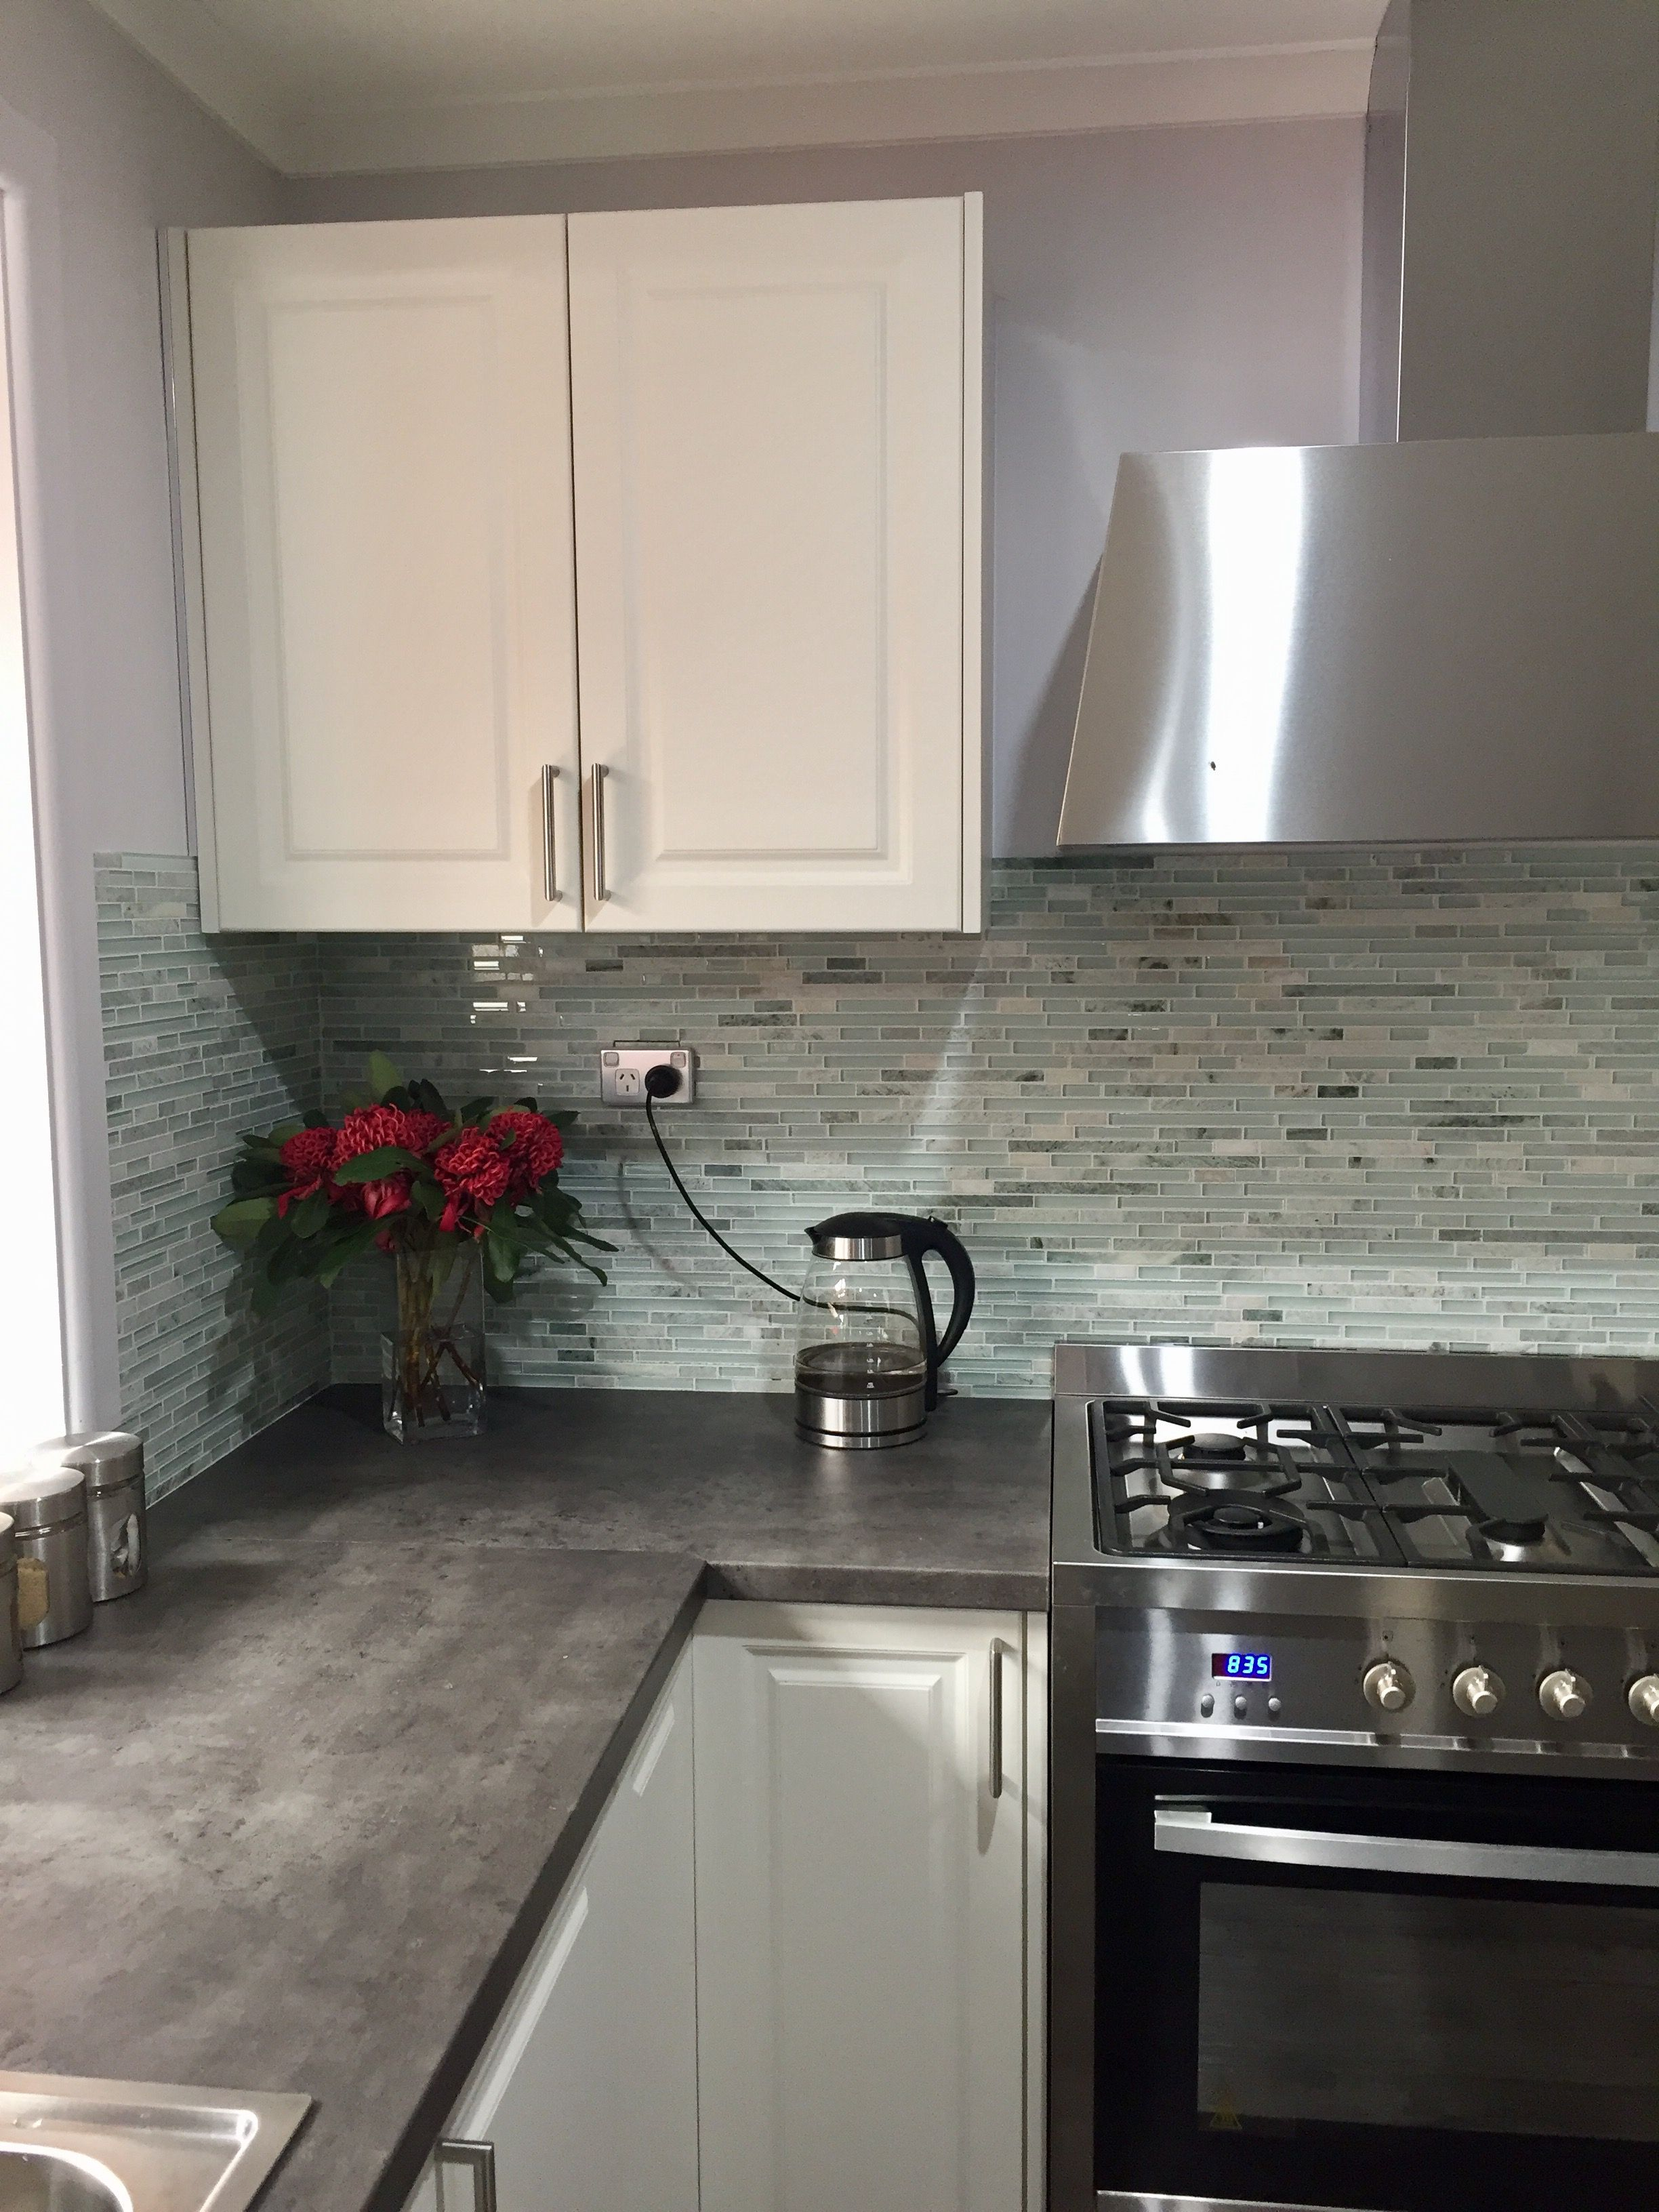 Mint marble tile and a Kaboodle kitchen present a pretty